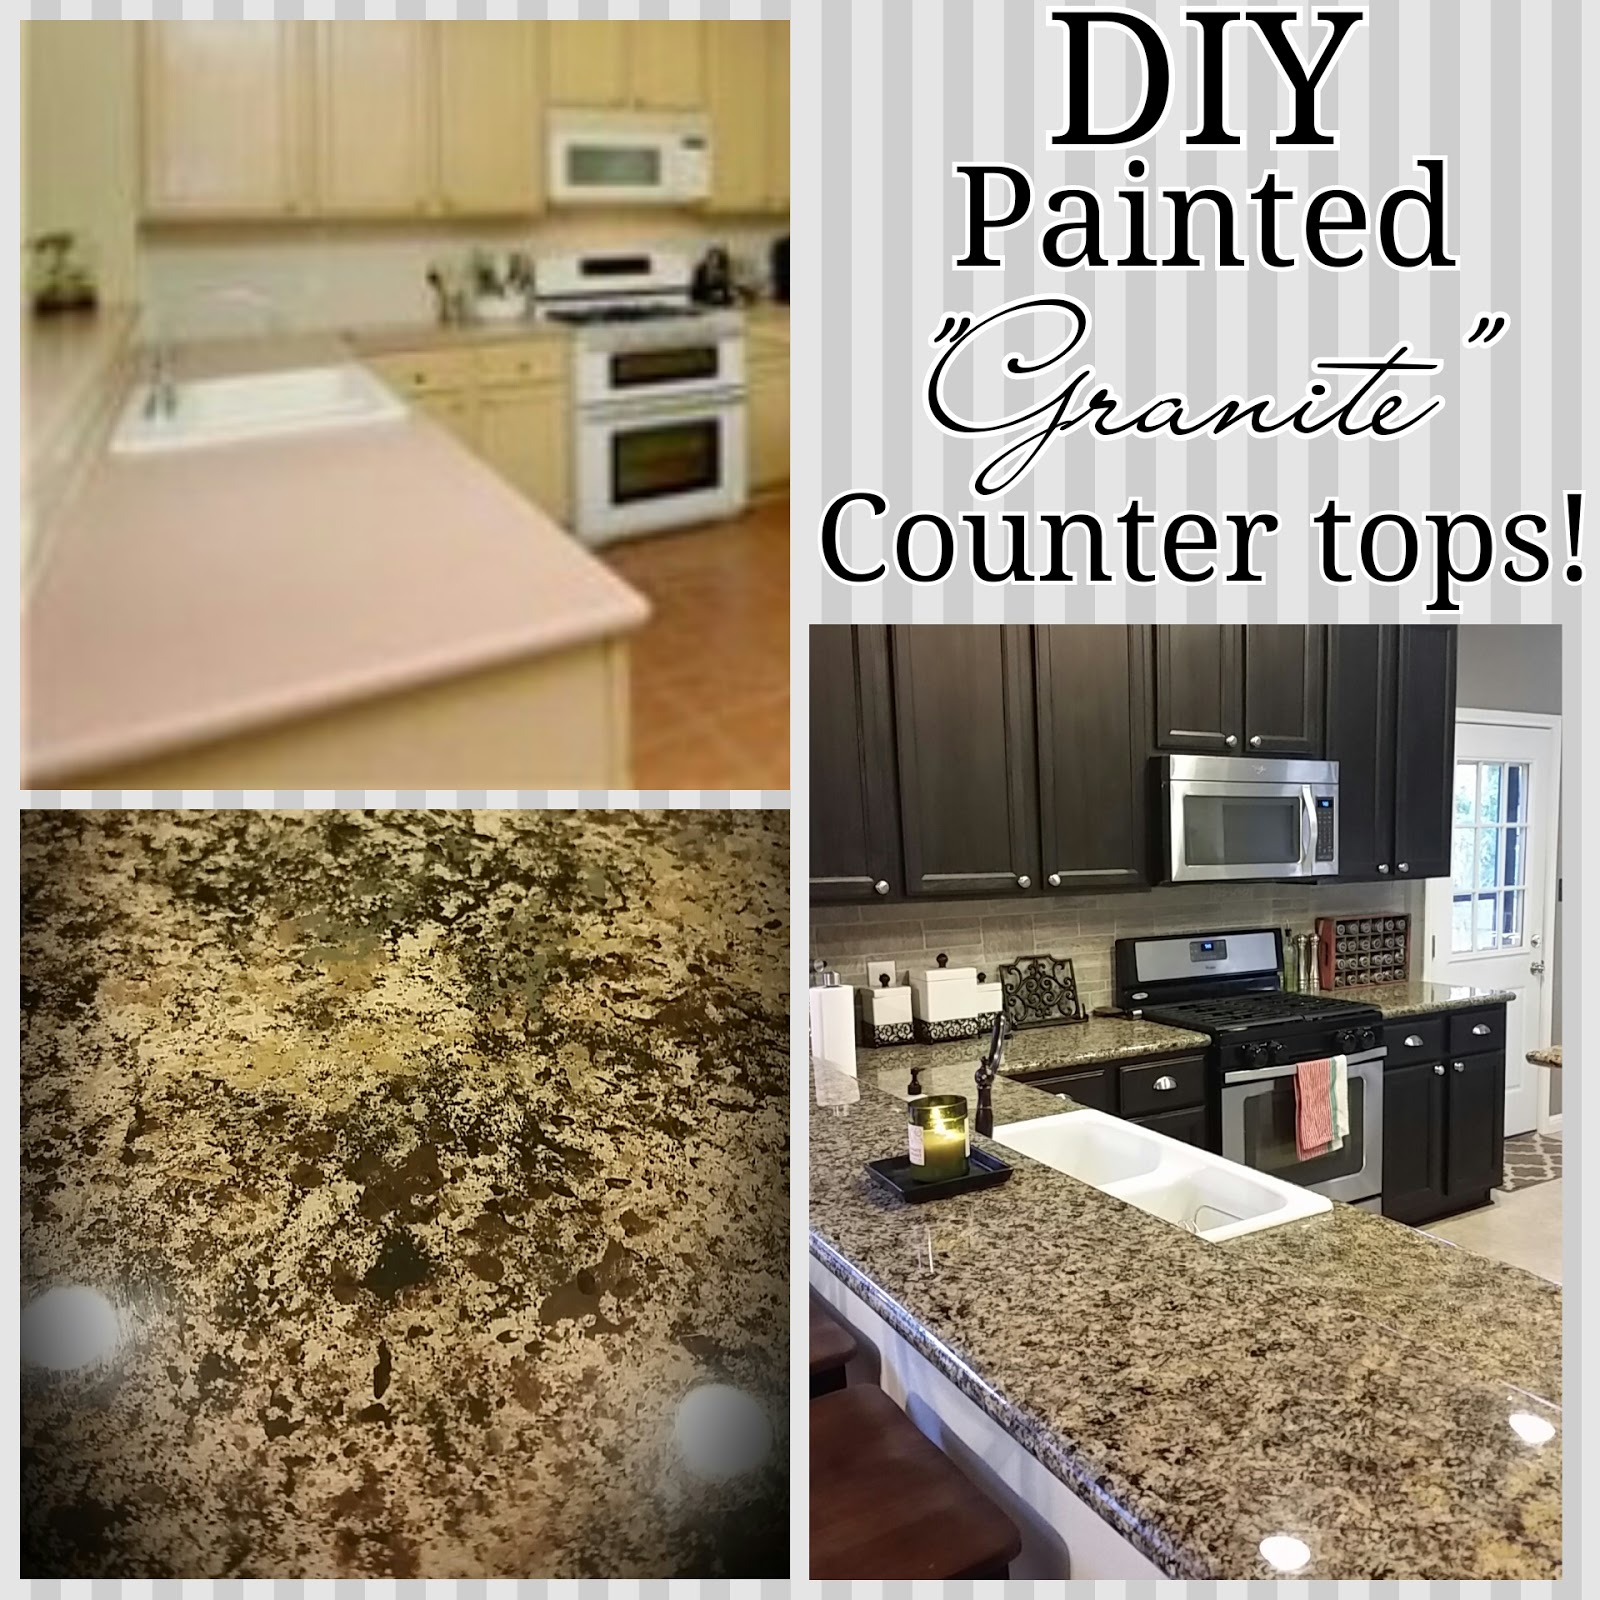 Painted countertops to look like granite - Awesome Diyife June With Paint Countertops To Look Like Granite